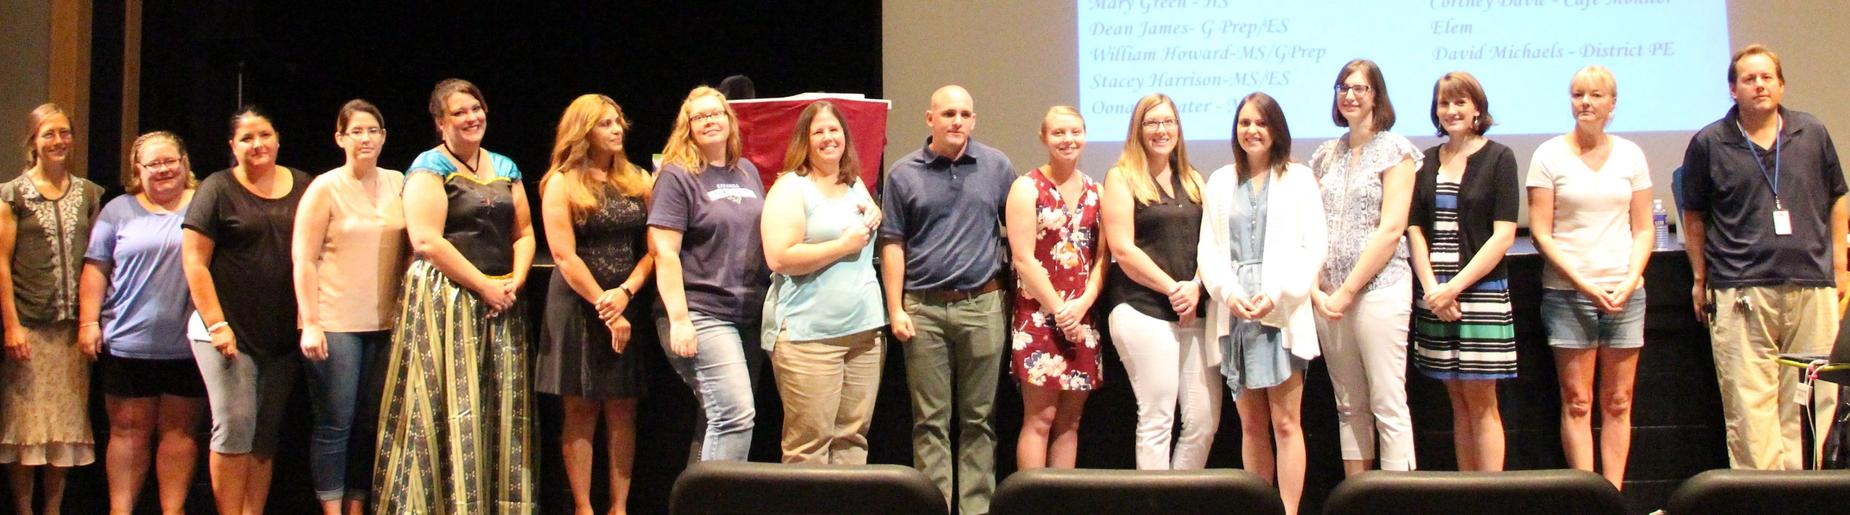 Gananda Central School District new hires for the 2018-2019 school year.